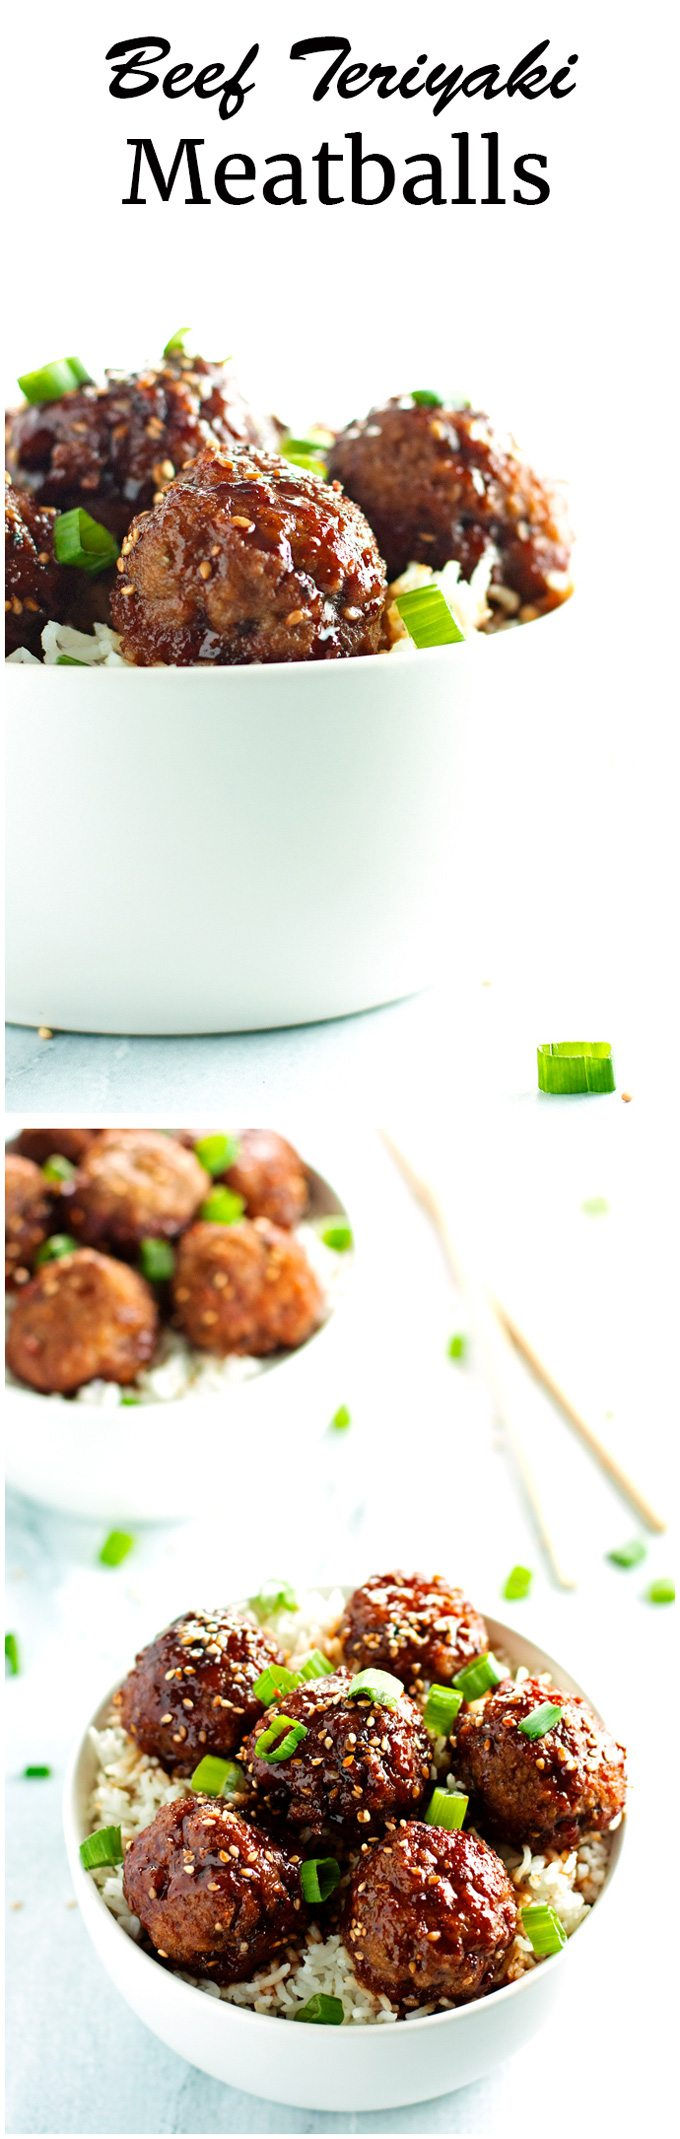 juicy, flavorful beef teriyaki meatballs served over rice and topped with sesame seeds and green onions.